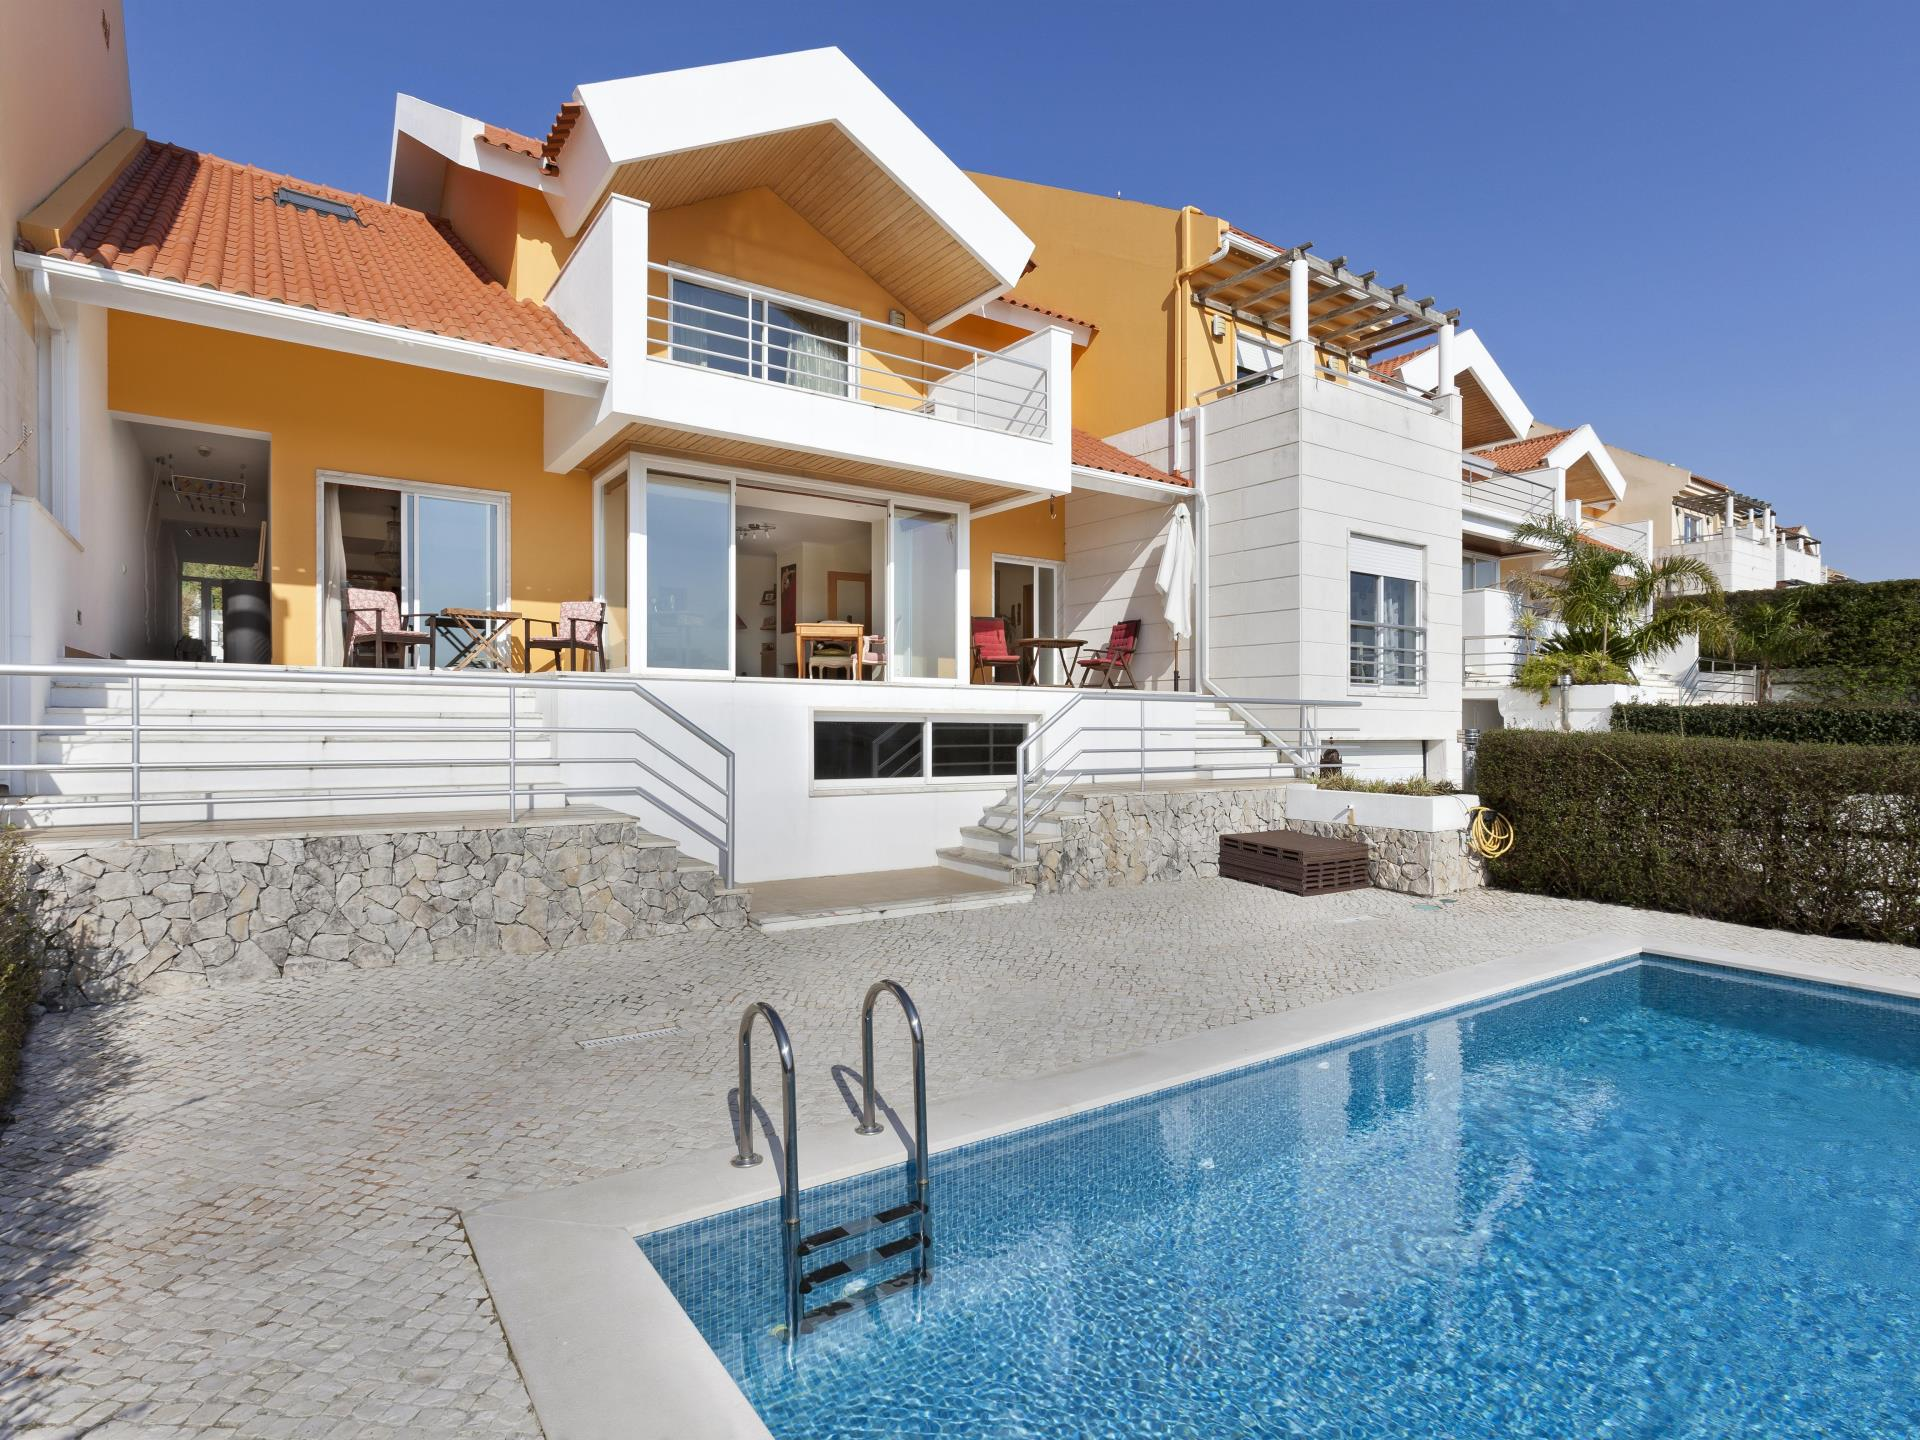 Single Family Home for Sale at House, 5 bedrooms, for Sale Belas, Sintra, Lisboa Portugal